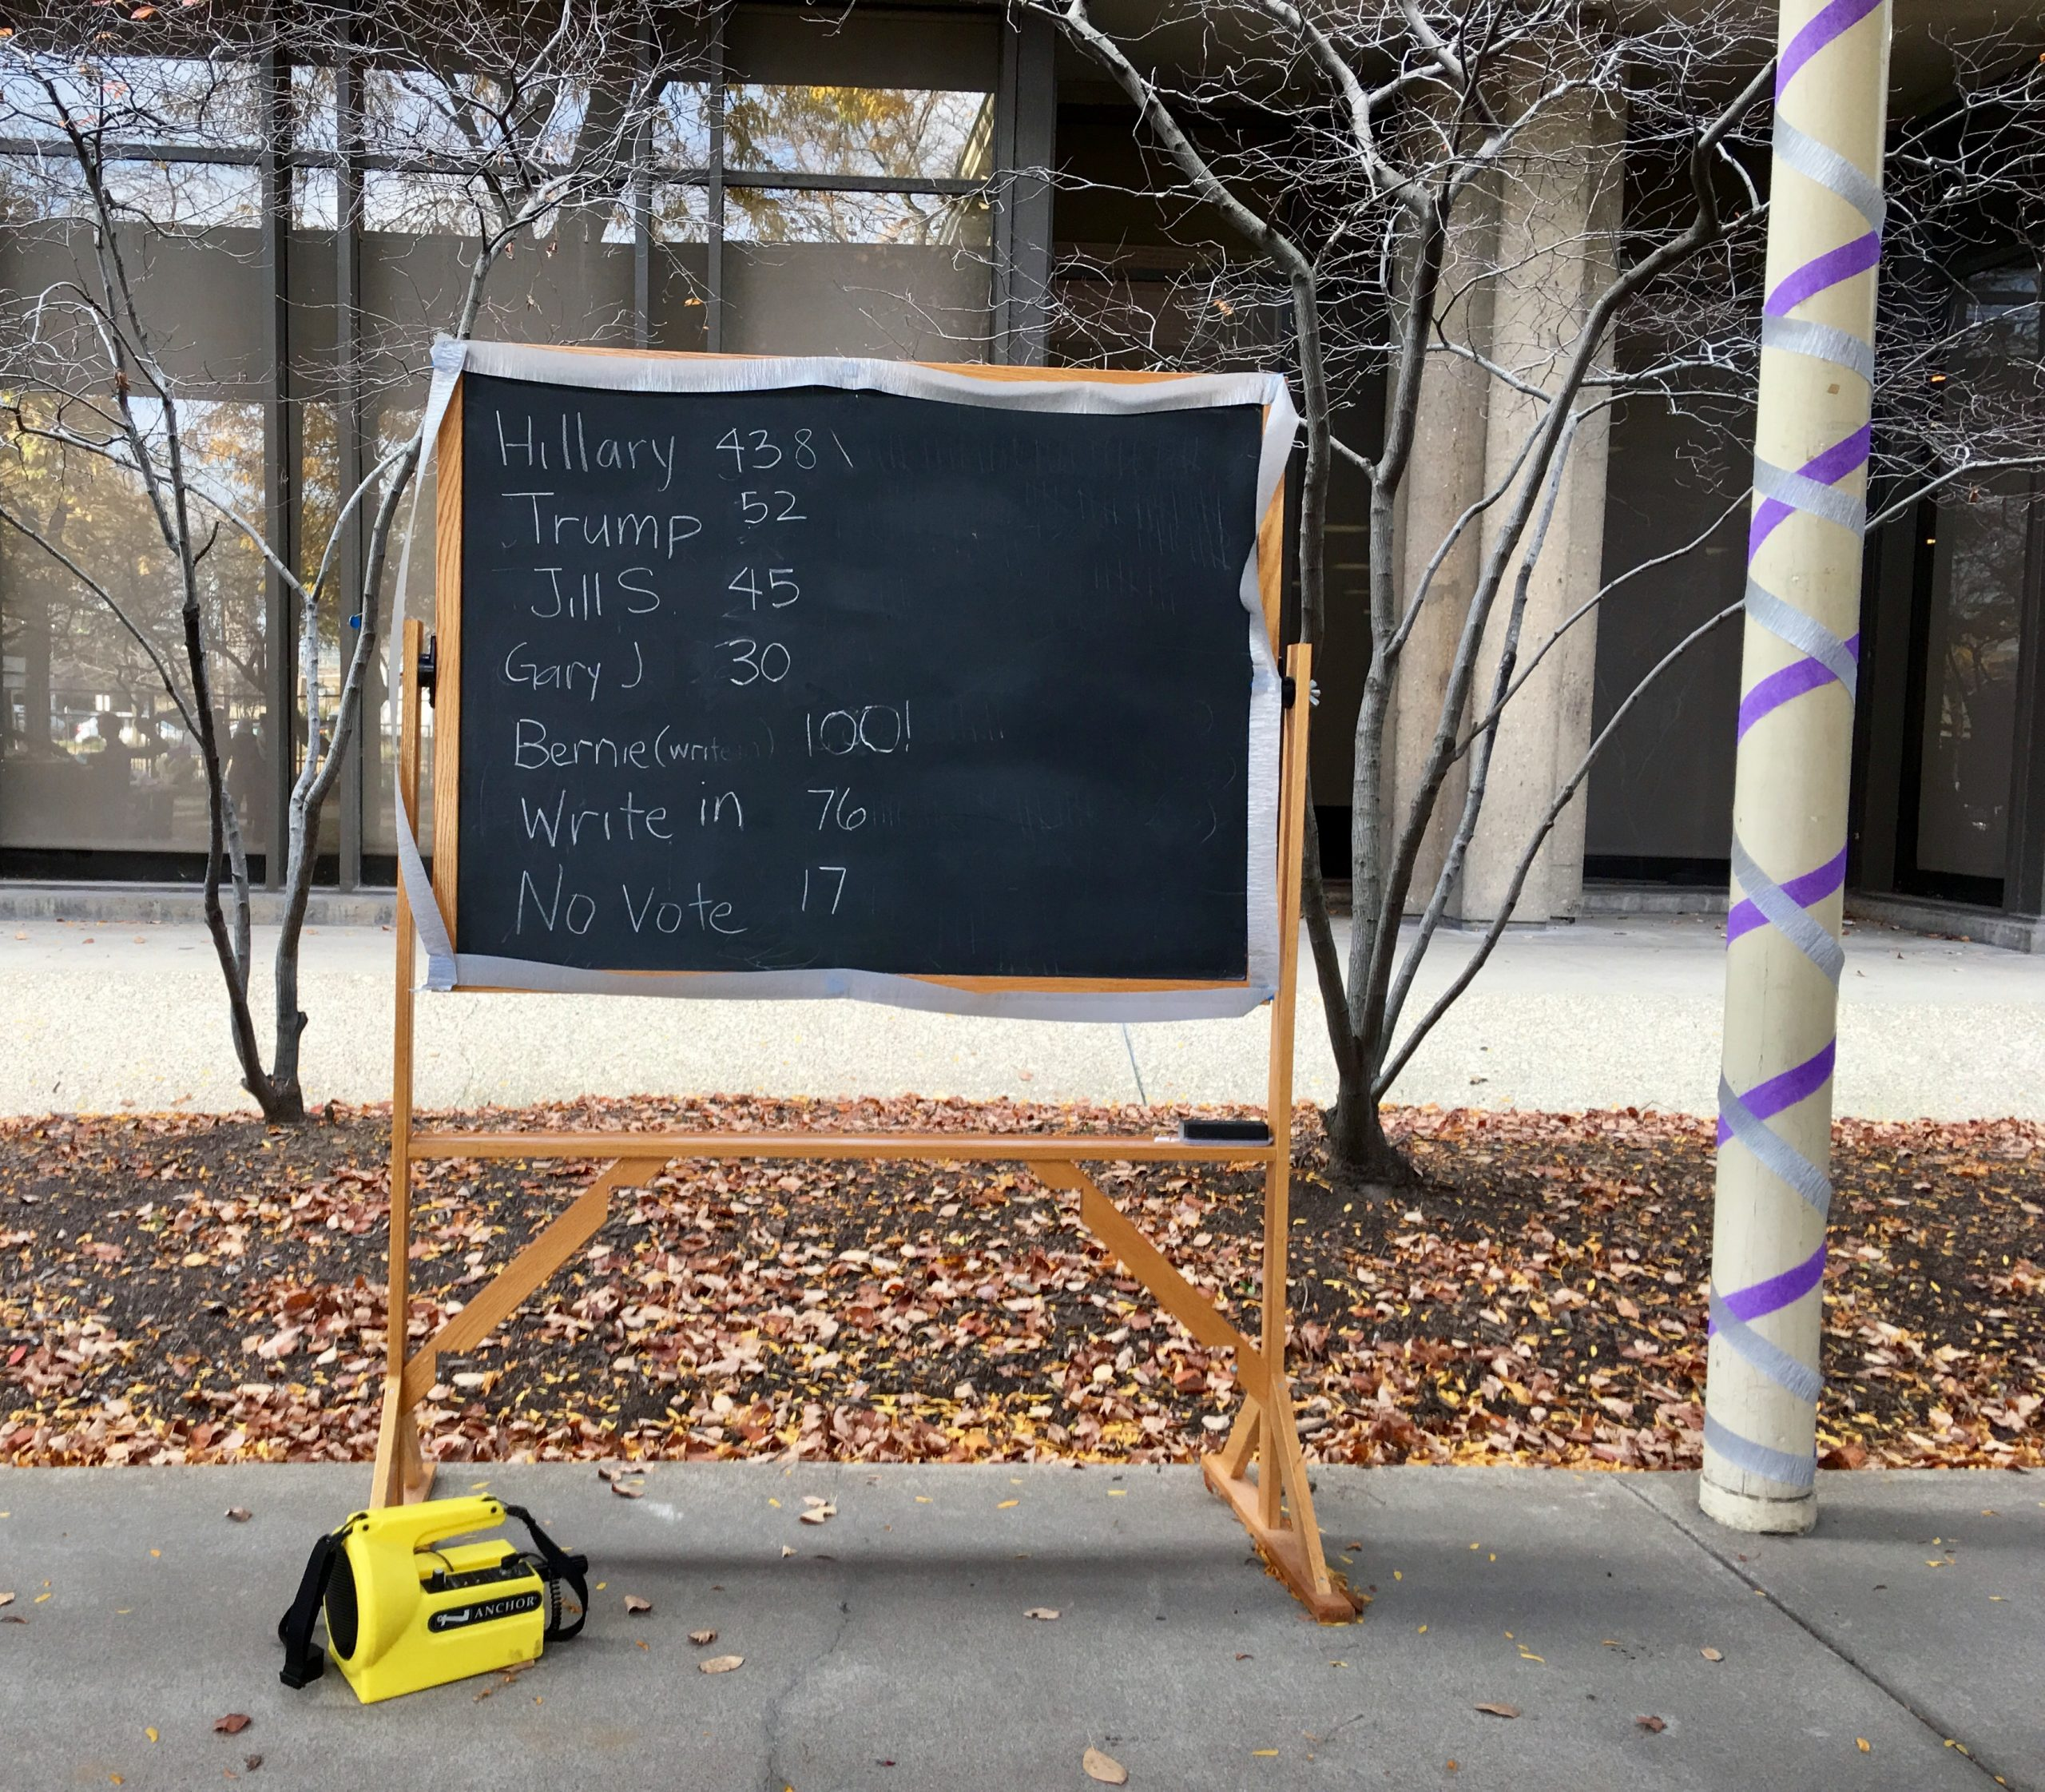 The chalkboard tally of symbolic votes was updated throughout the afternoon.